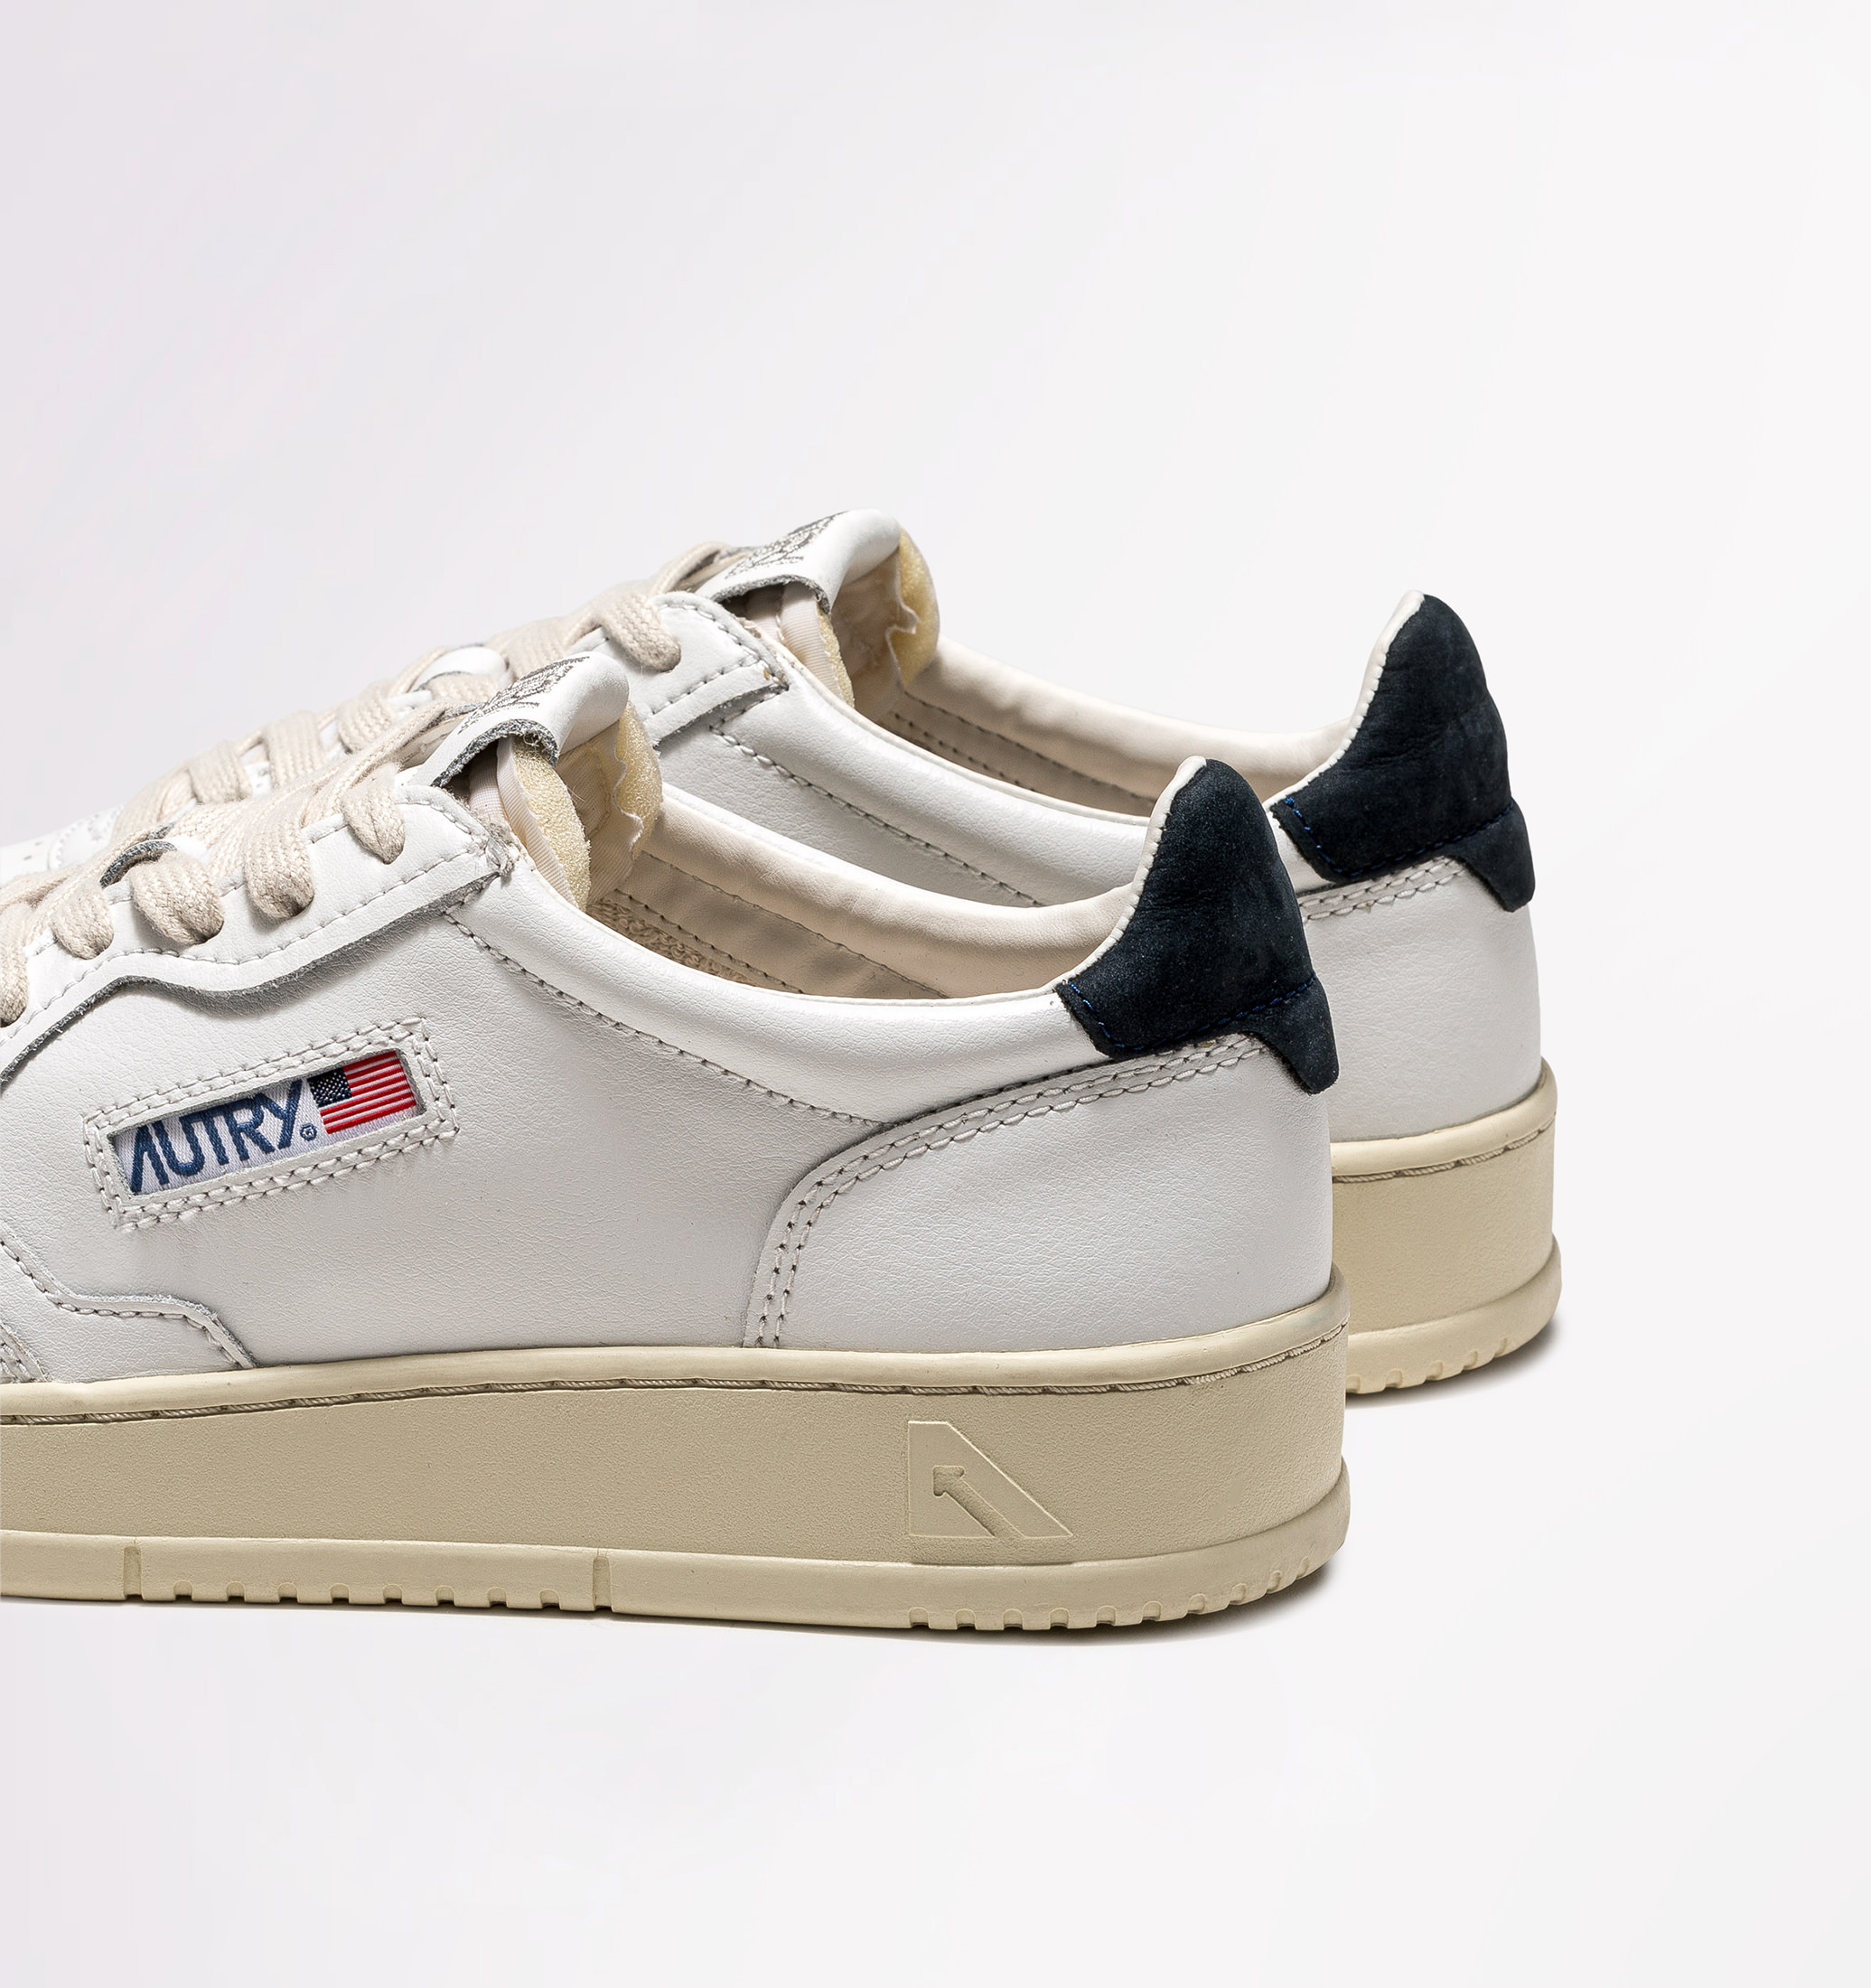 autry-01-low-leather-nubuck-white-space-back